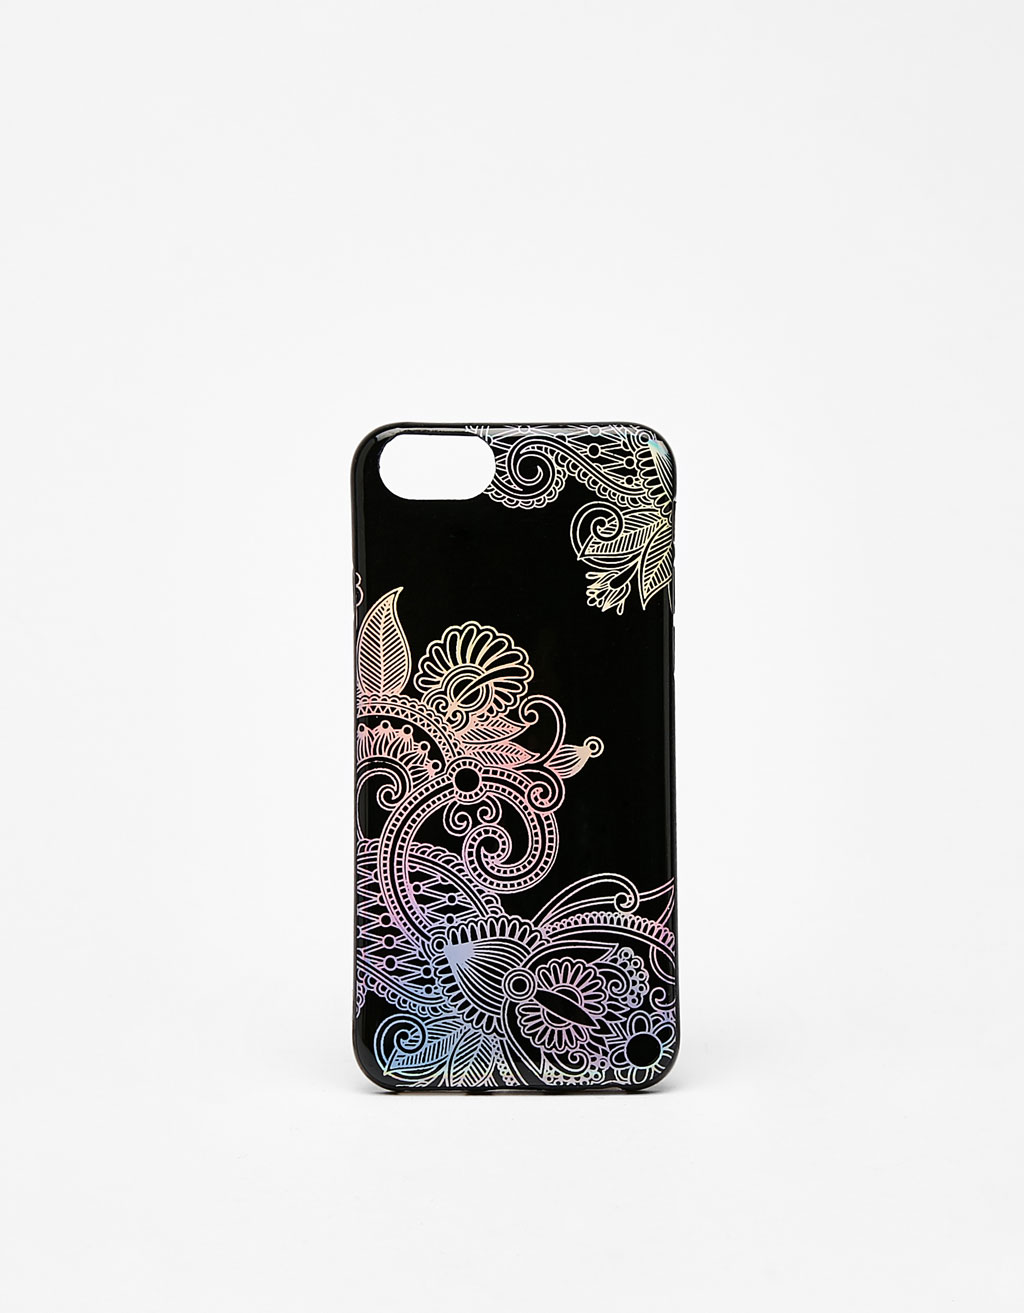 Carcasa con relieve holográfico iPhone 6/6s/7